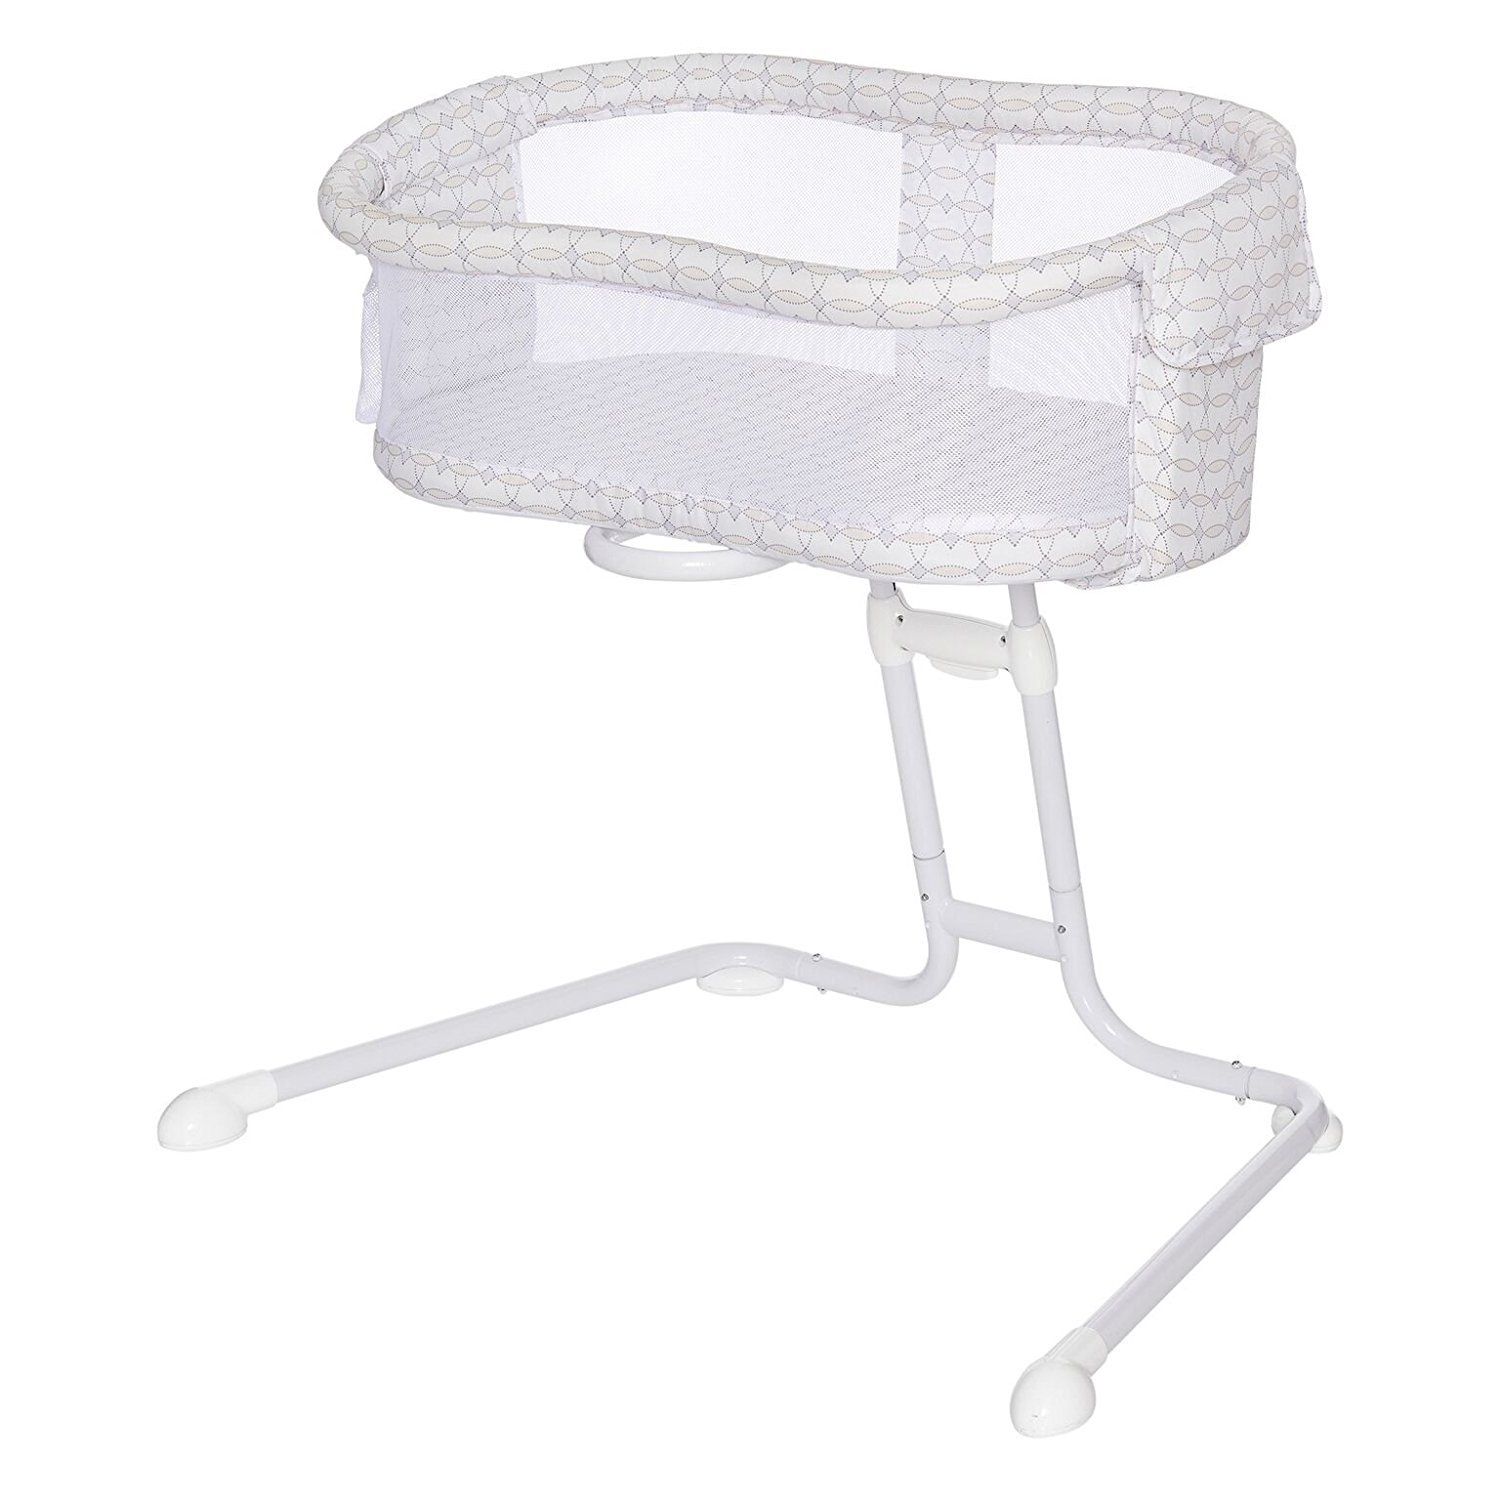 Halo Bassinet Glide Sleeper Image